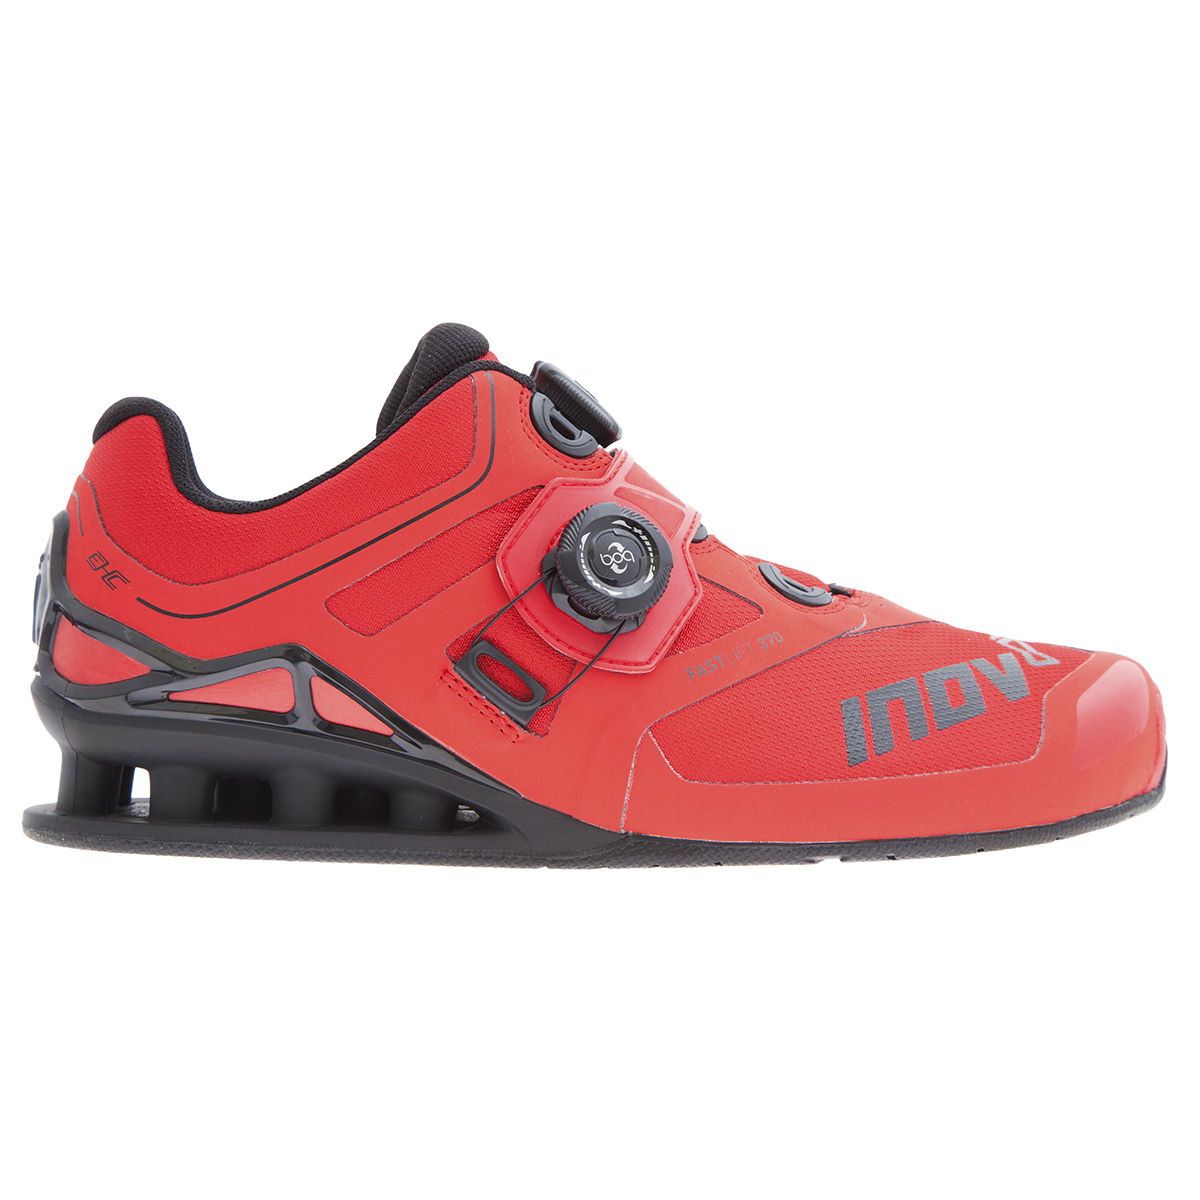 Red Lifting Shoes